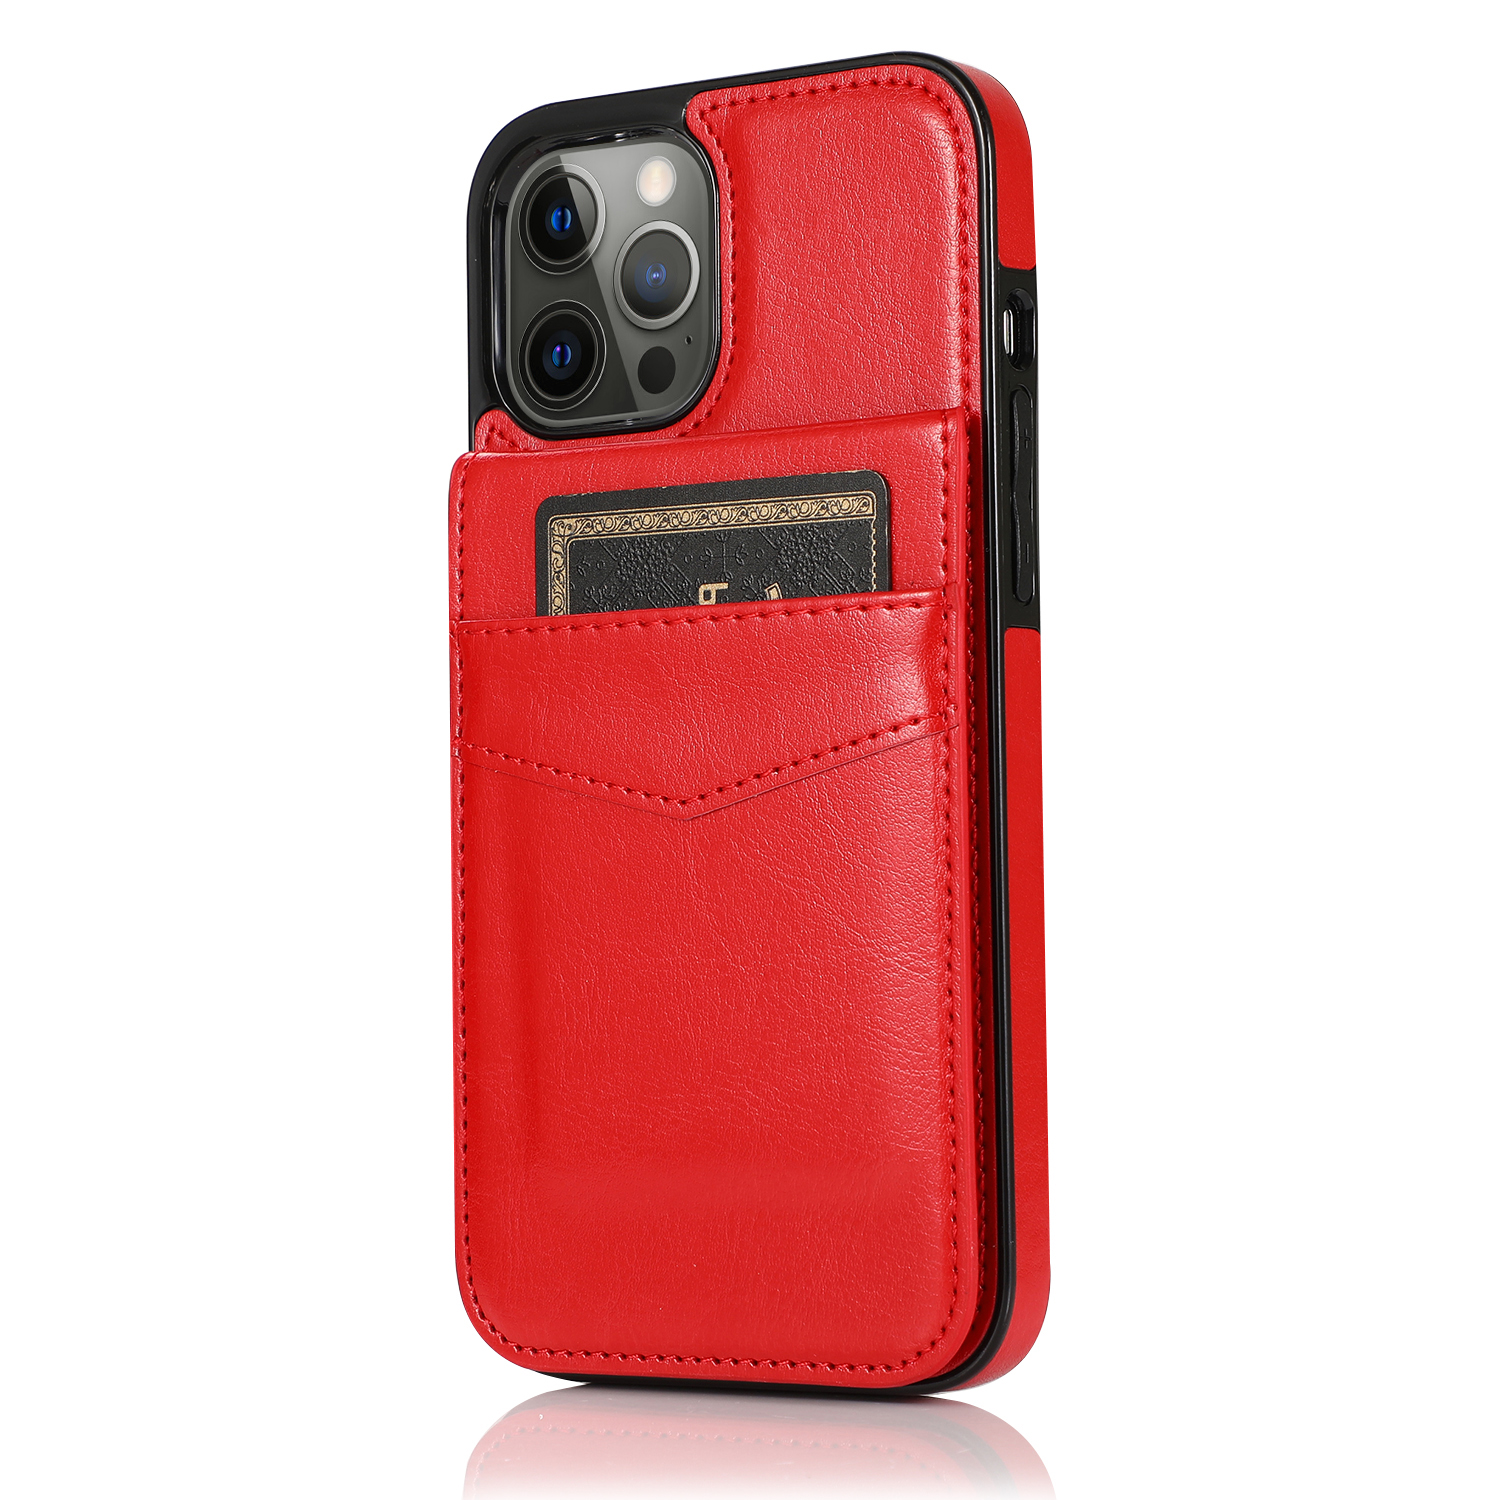 Mobile Phone Case Solid Color Plug-in Card Protective Case Cover For Iphone12 red_iphone 12promax 6.7